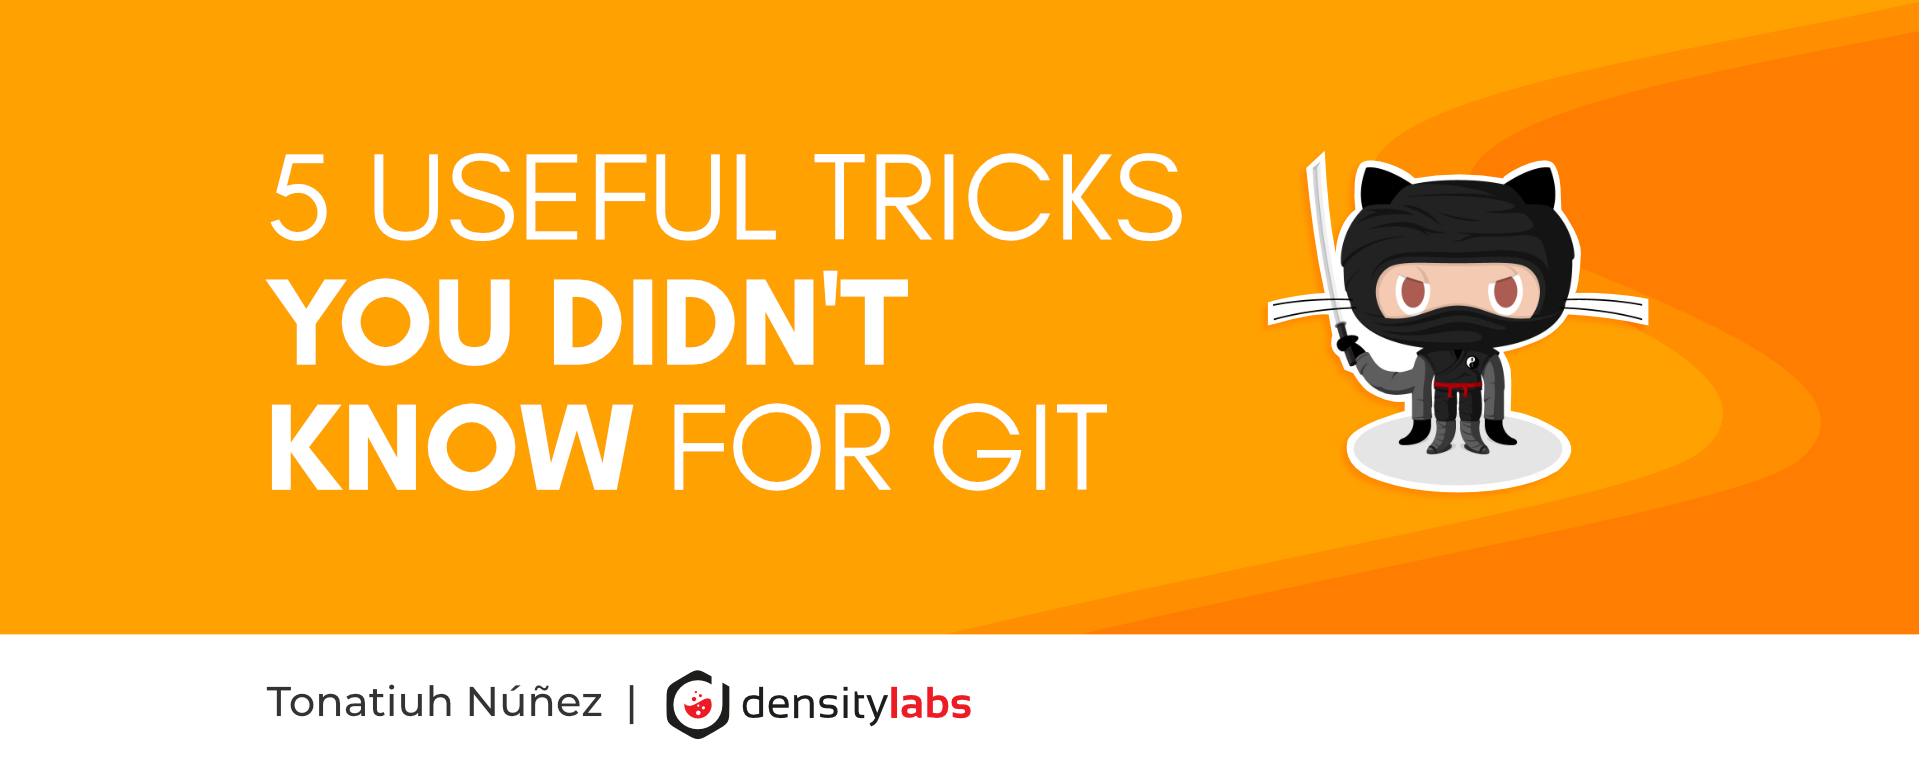 5 Useful Tricks You Didn't Know for Git